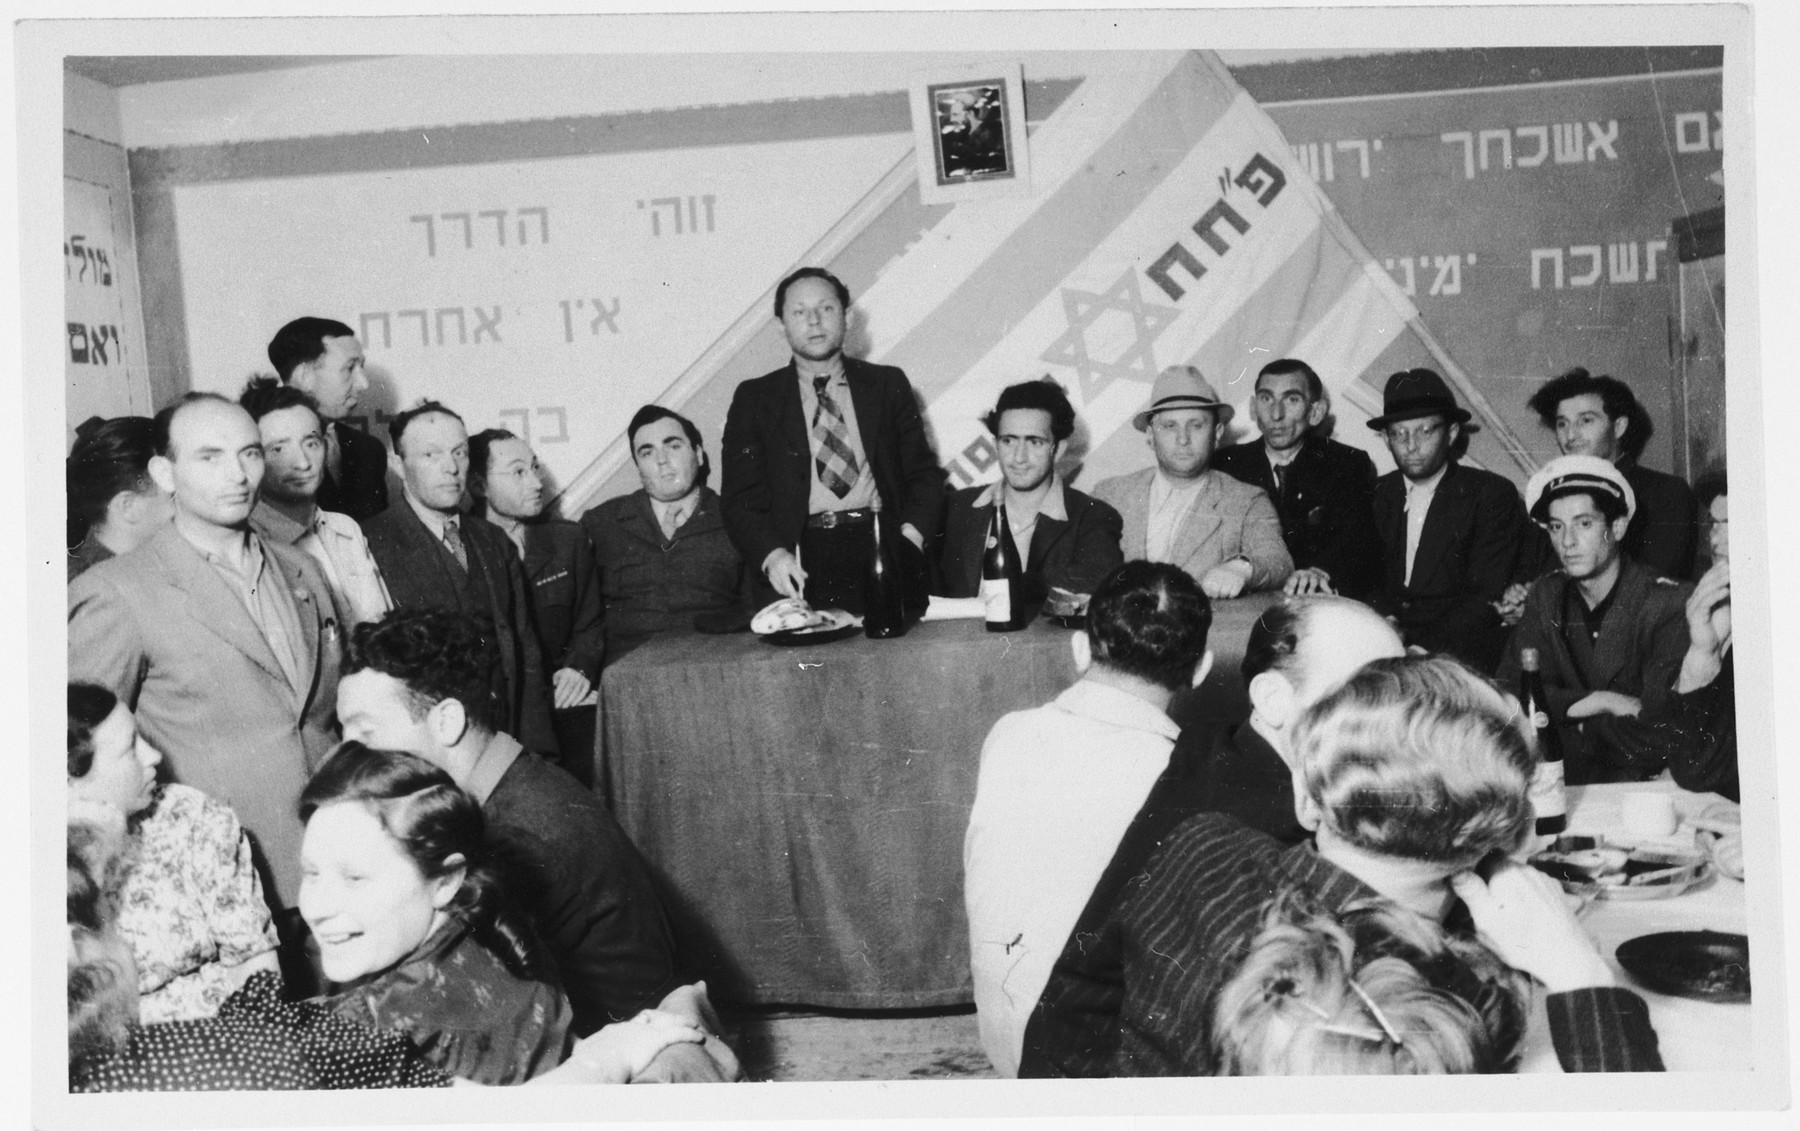 Members of the Zionist group Partizanim-Hayyalim-Halutzim meet in the Zeilsheim displaced persons' camp held in a room decorated with a flag and posters.